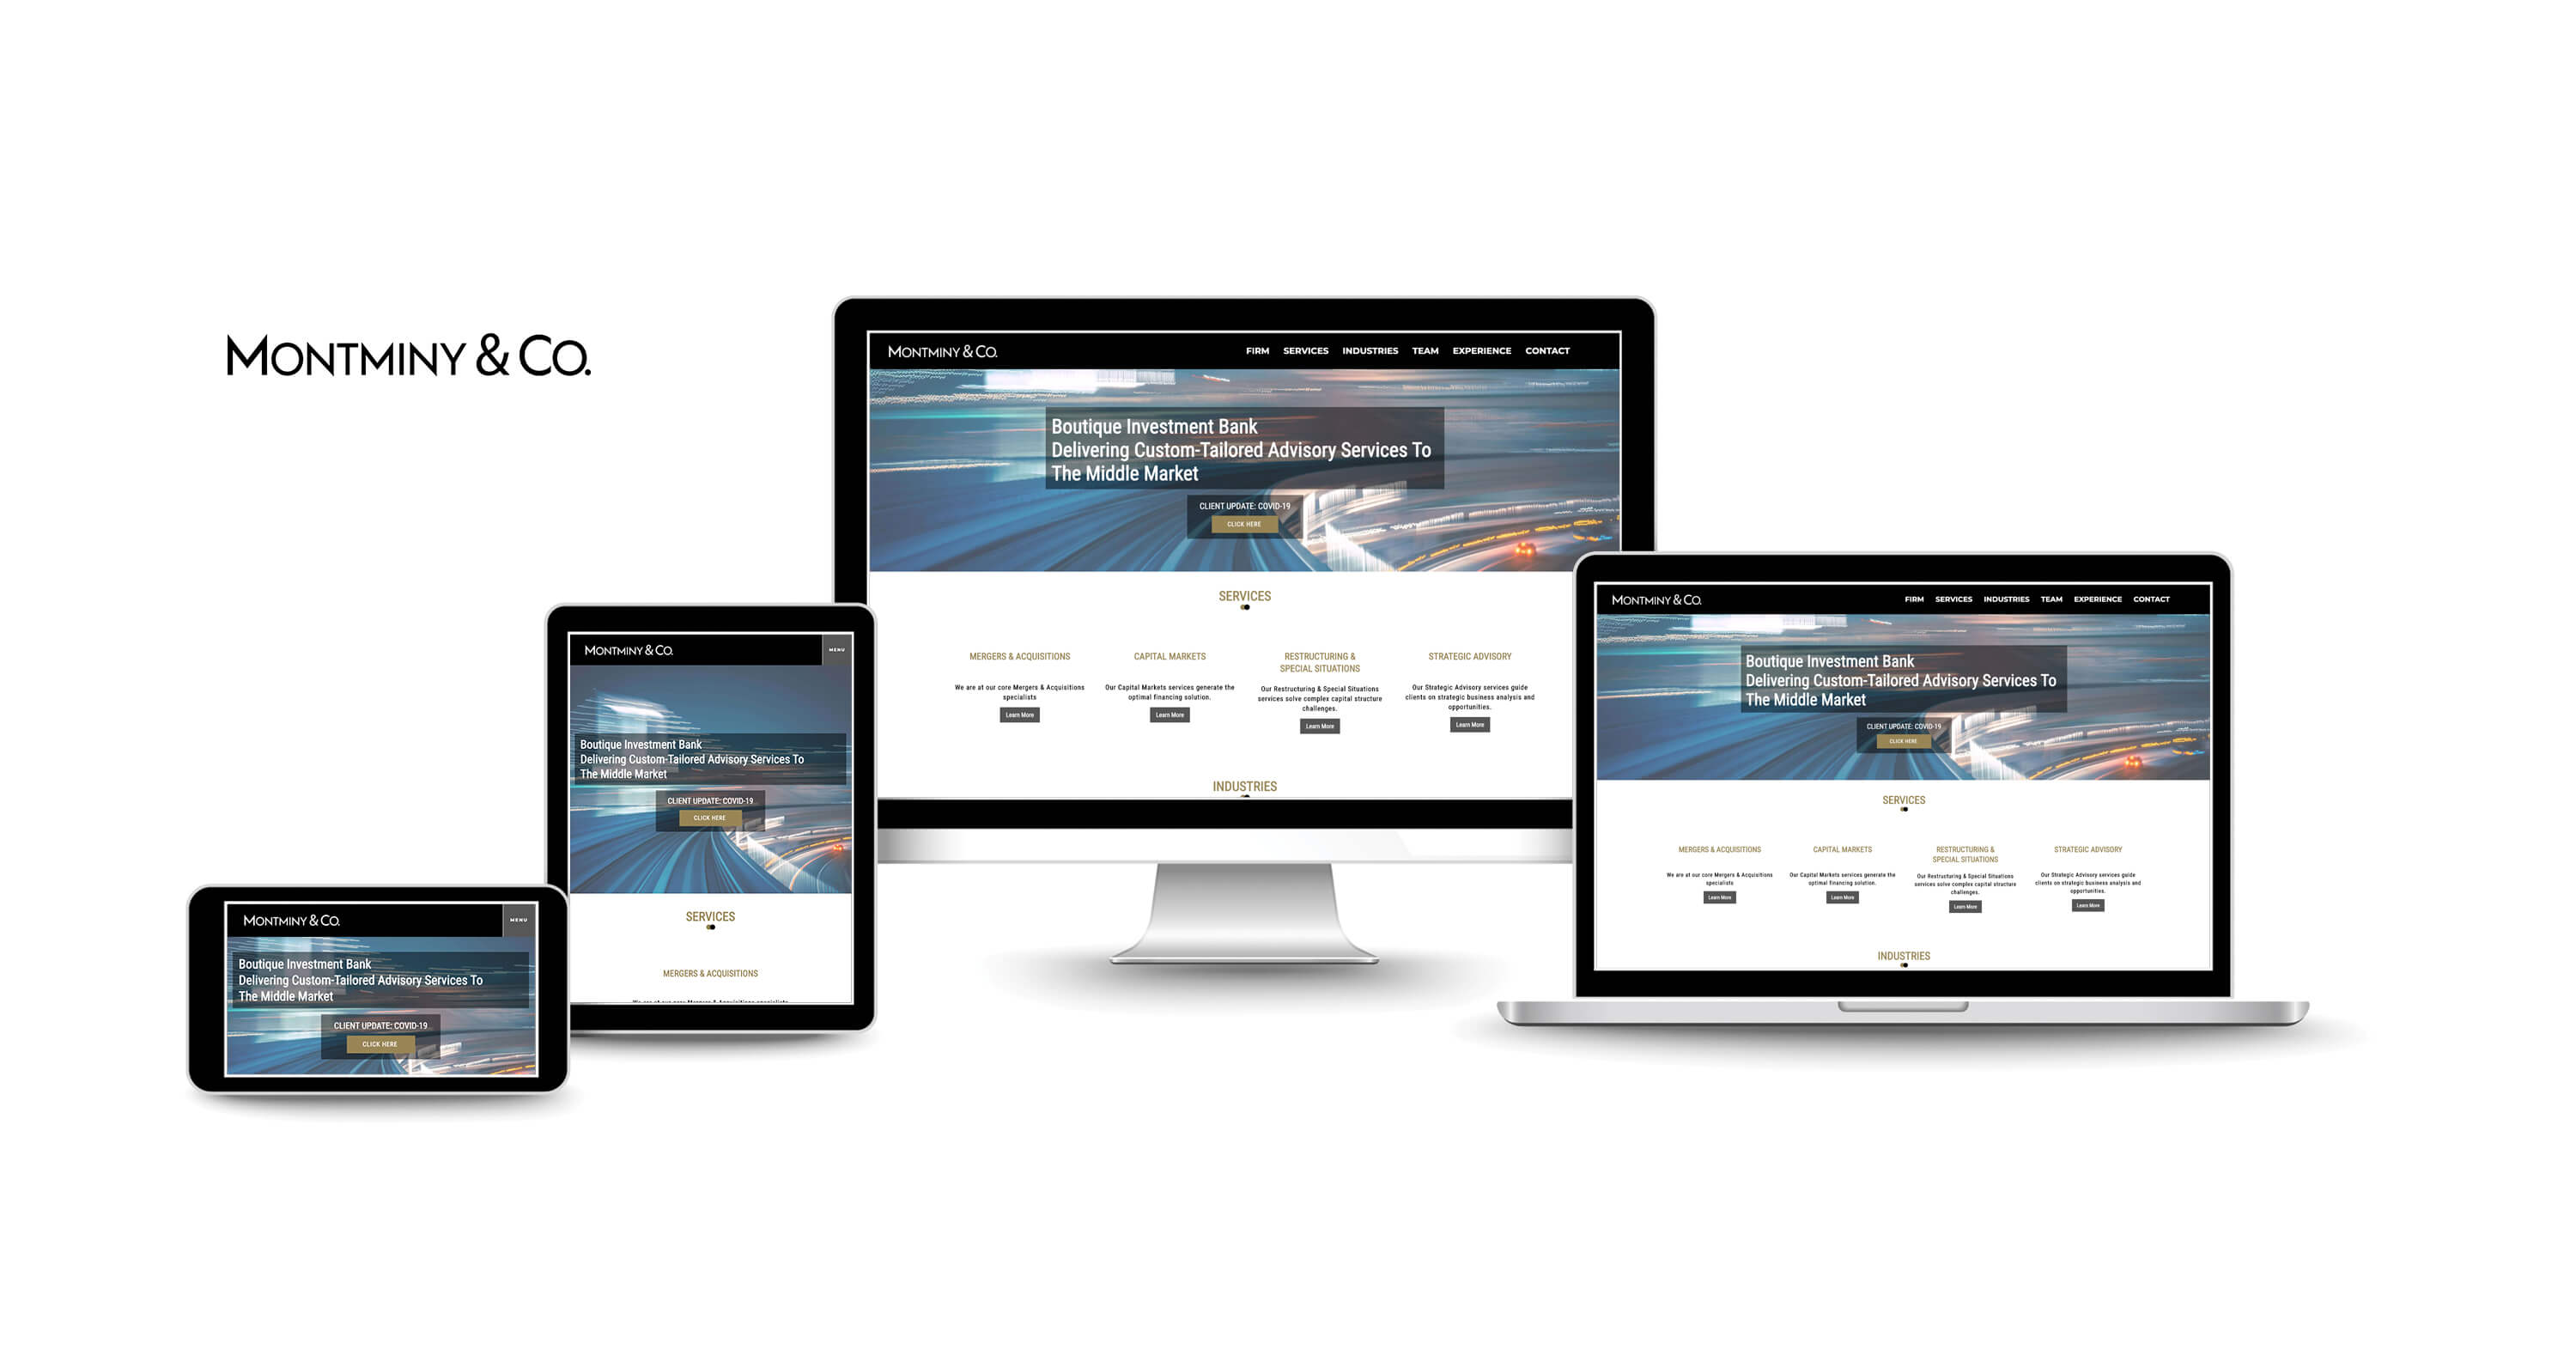 website design company for investment banking firms